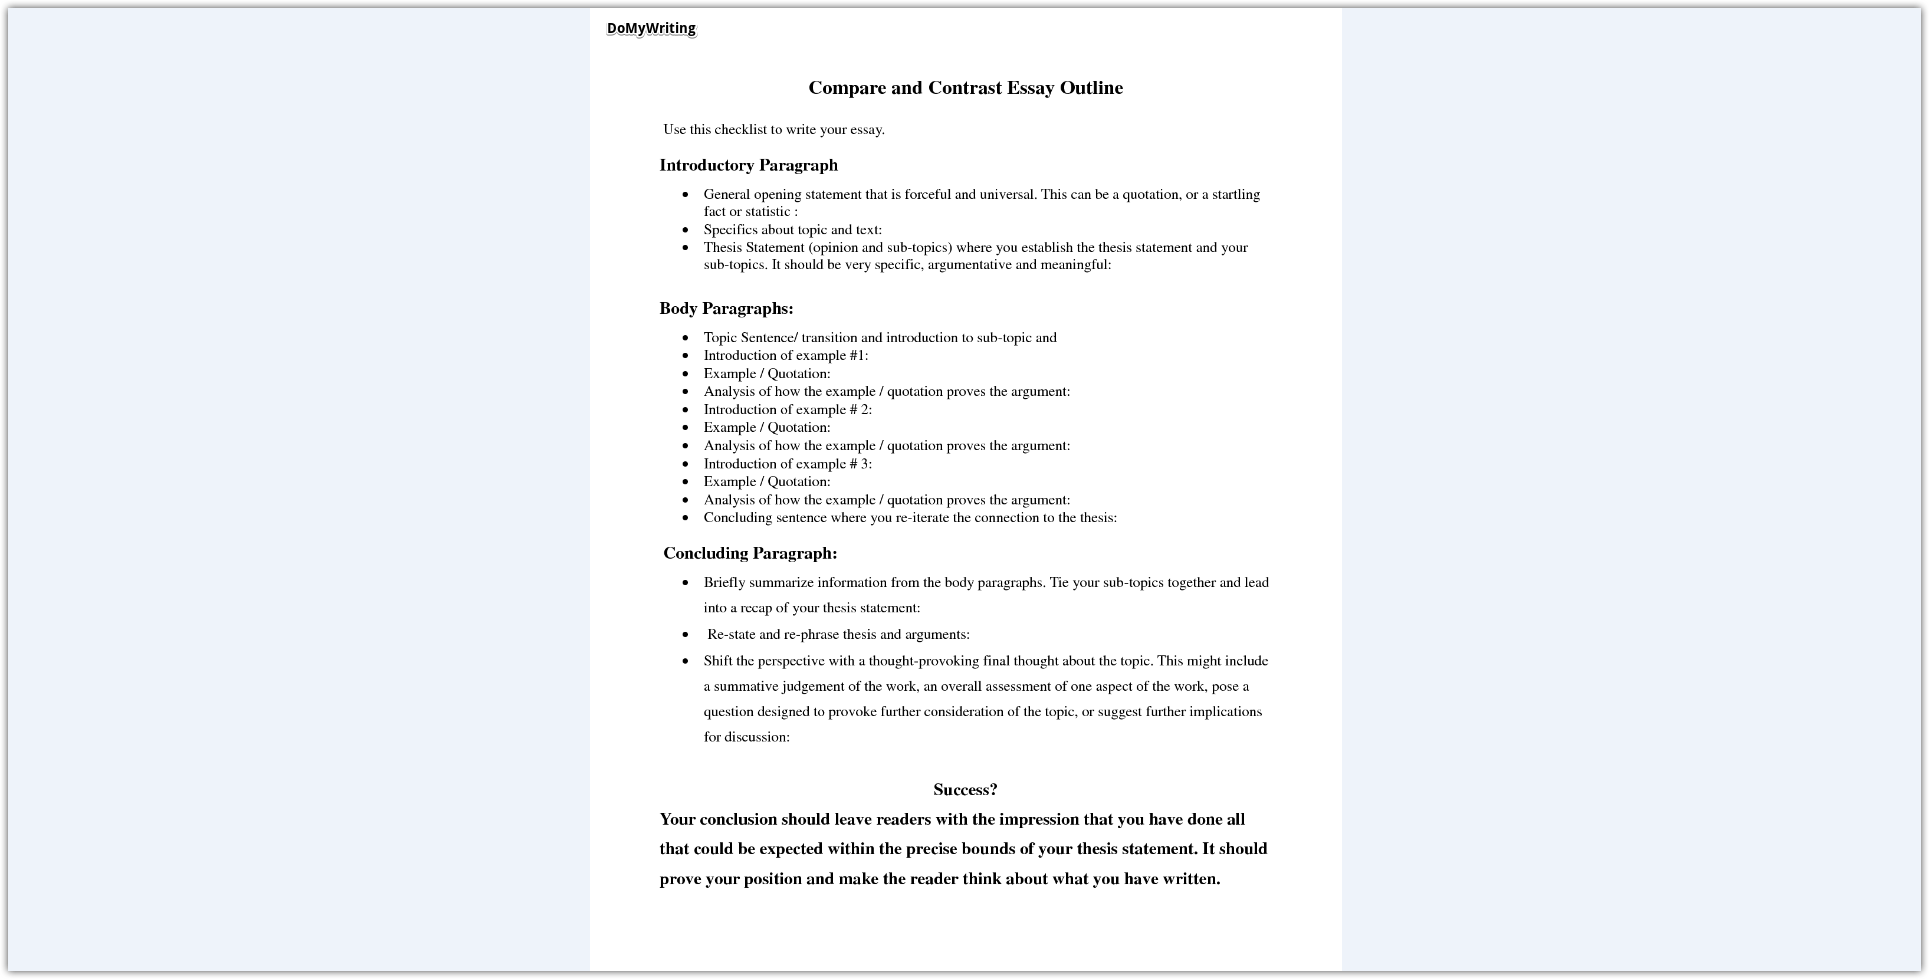 Guided Writing A Winning Compare And Contrast Essay